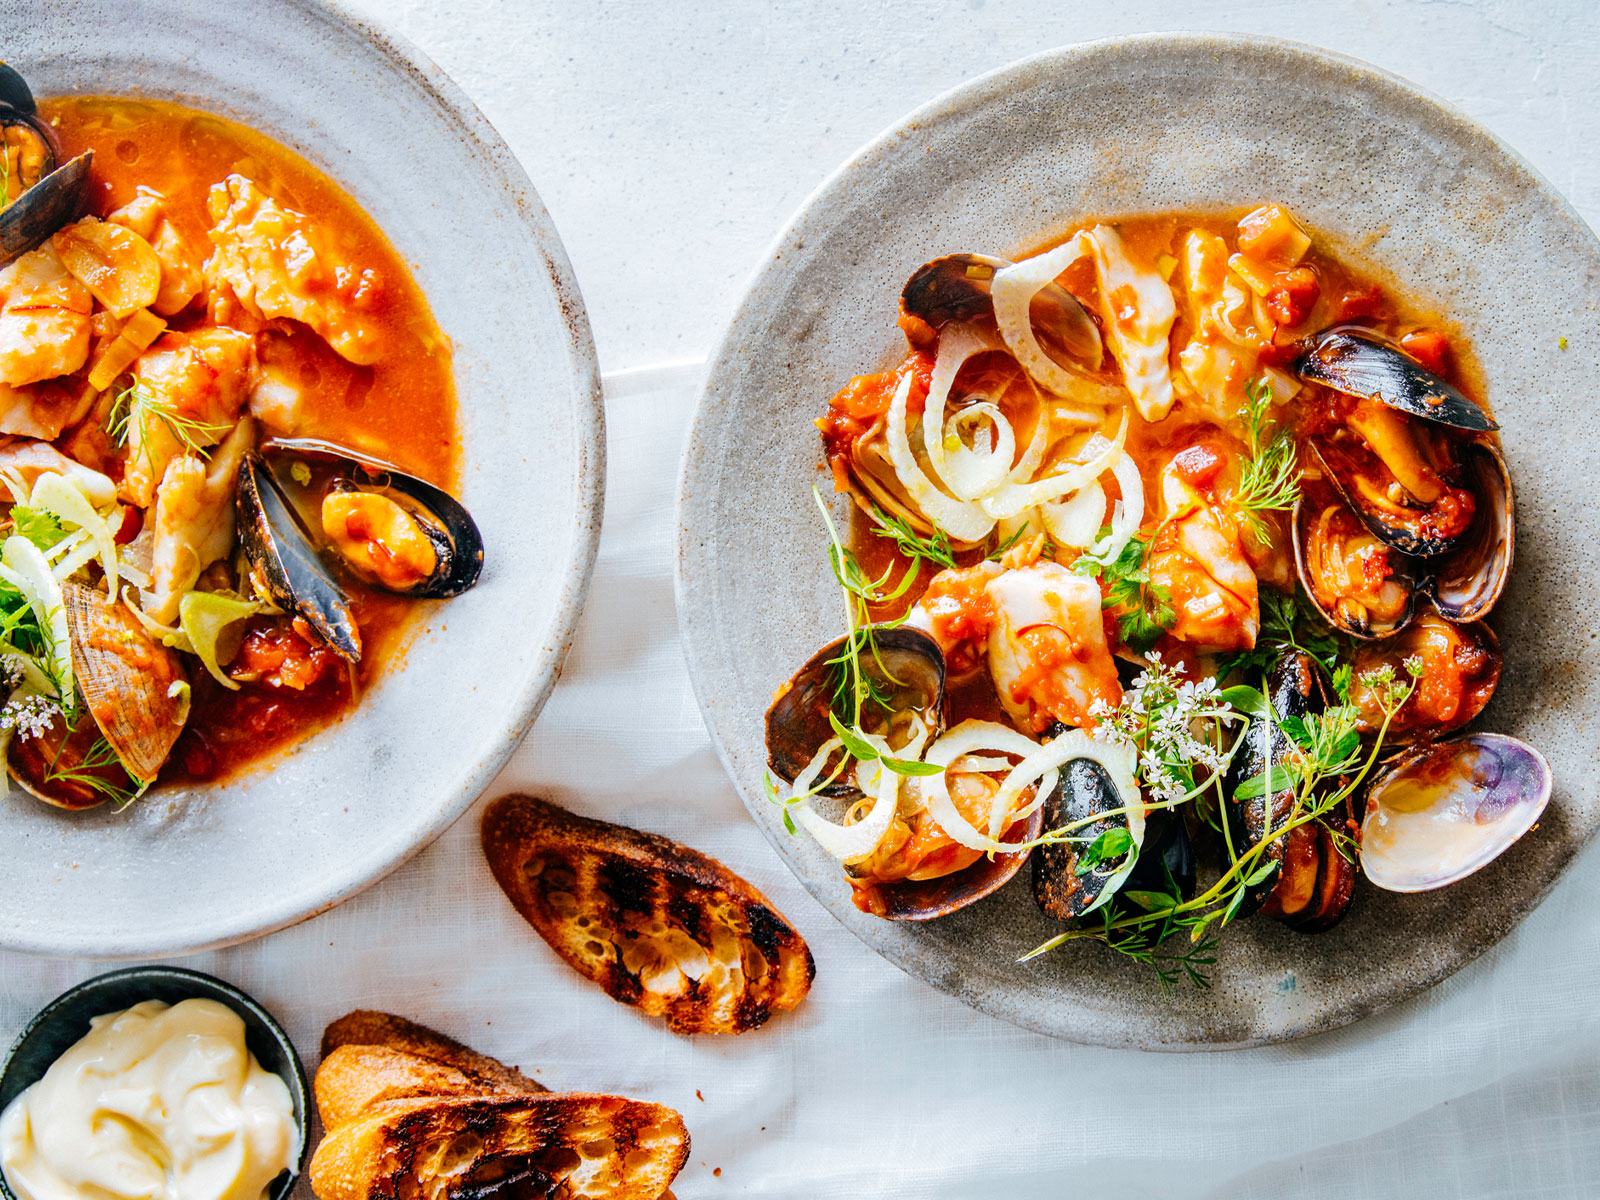 Wild Alaska Pollock Seafood Stew with Mussels and Clams